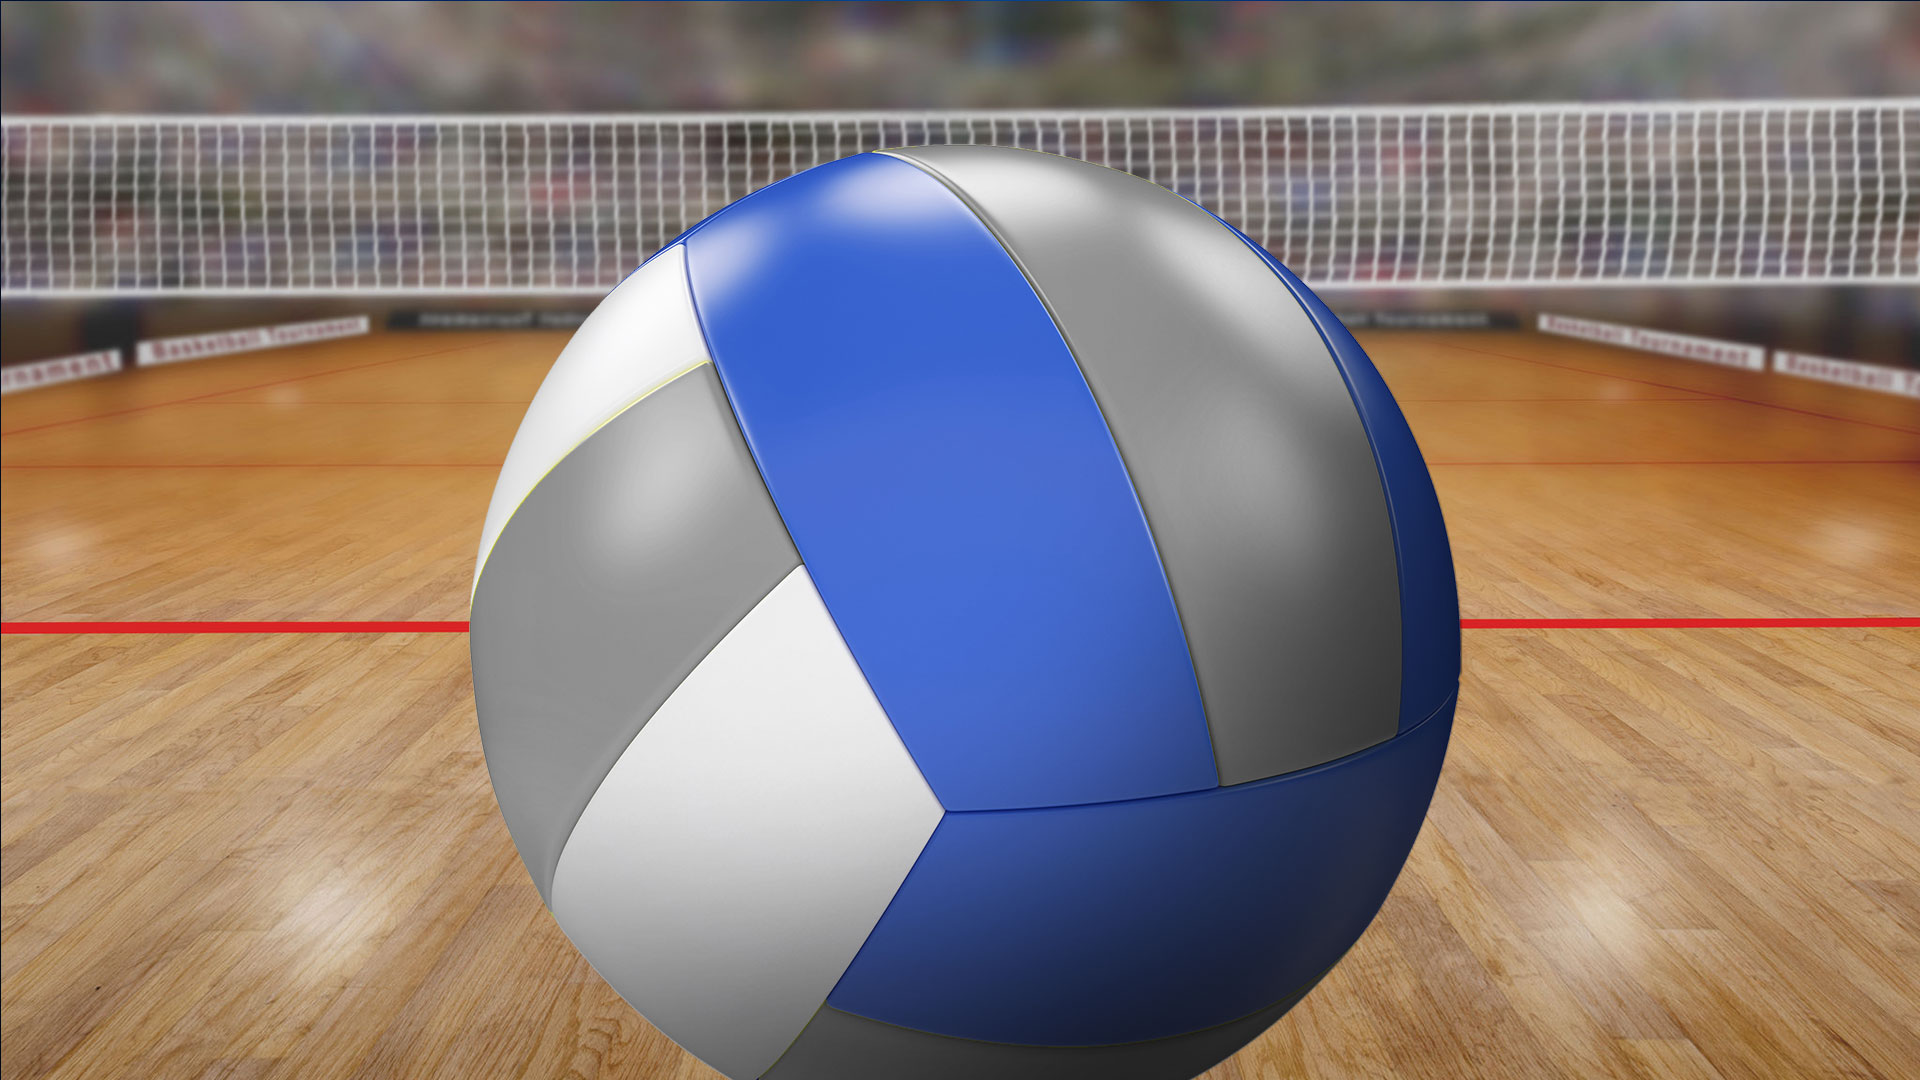 KELO-sports-generic-volleyball_1529437995484.jpg